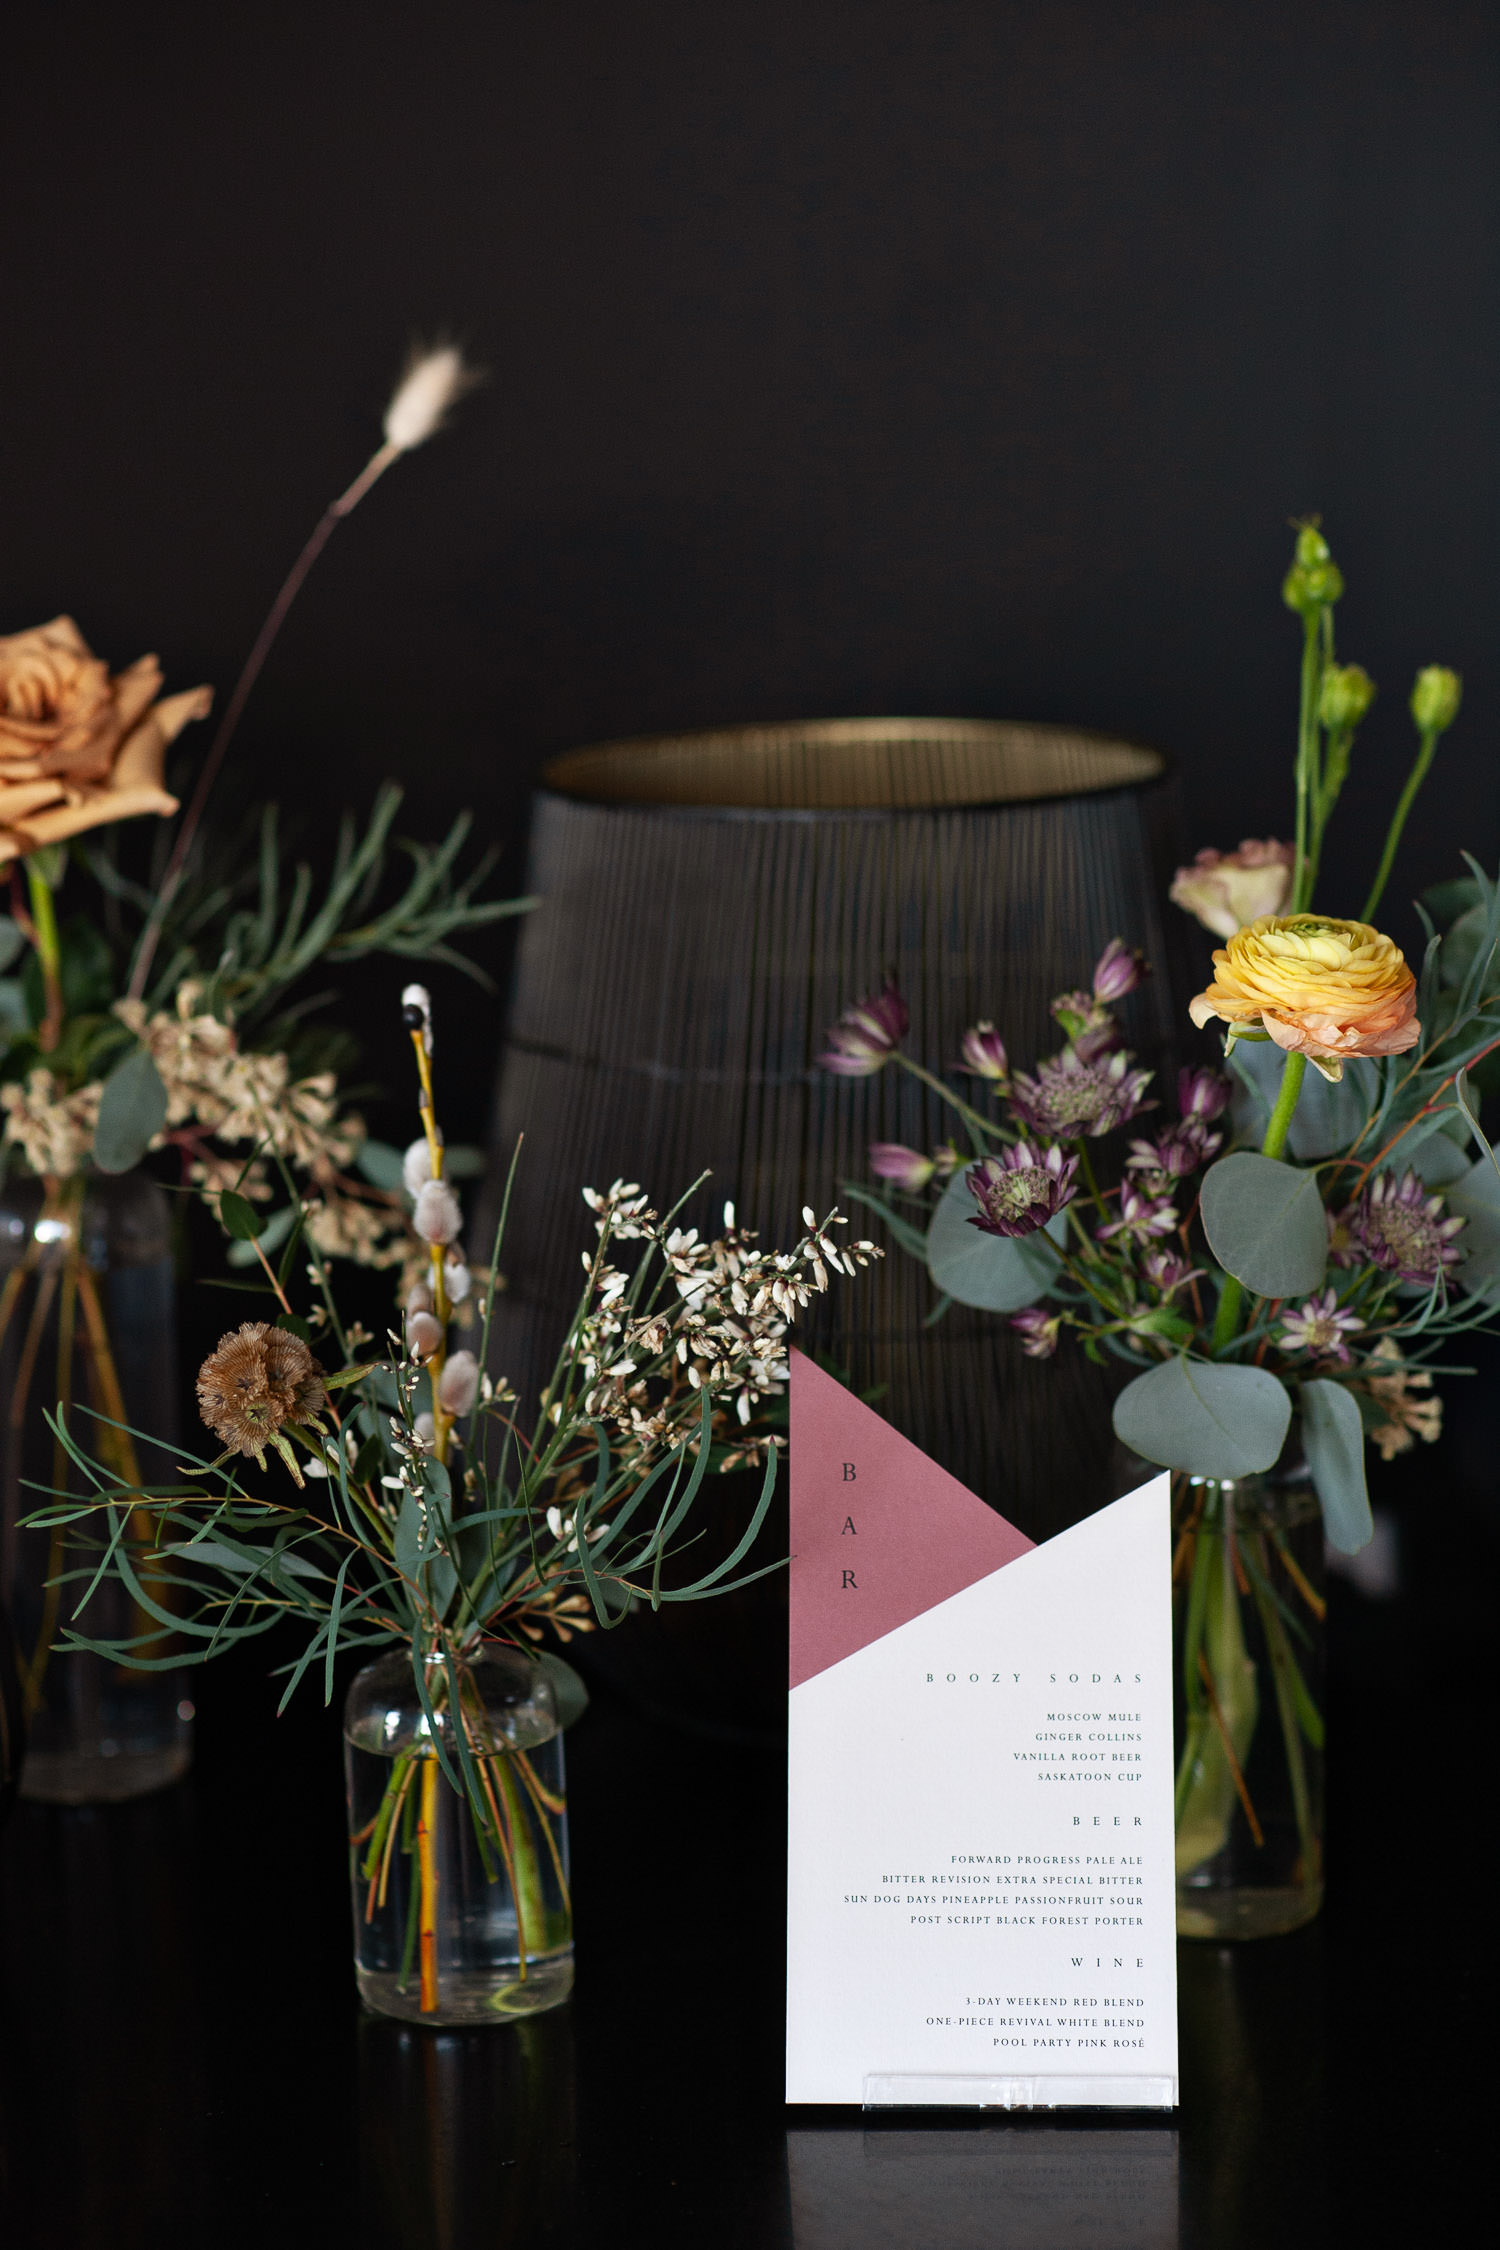 Wedding florals by Sweet Bloom at a micro wedding in Calgary captured by Tara Whittaker Photography